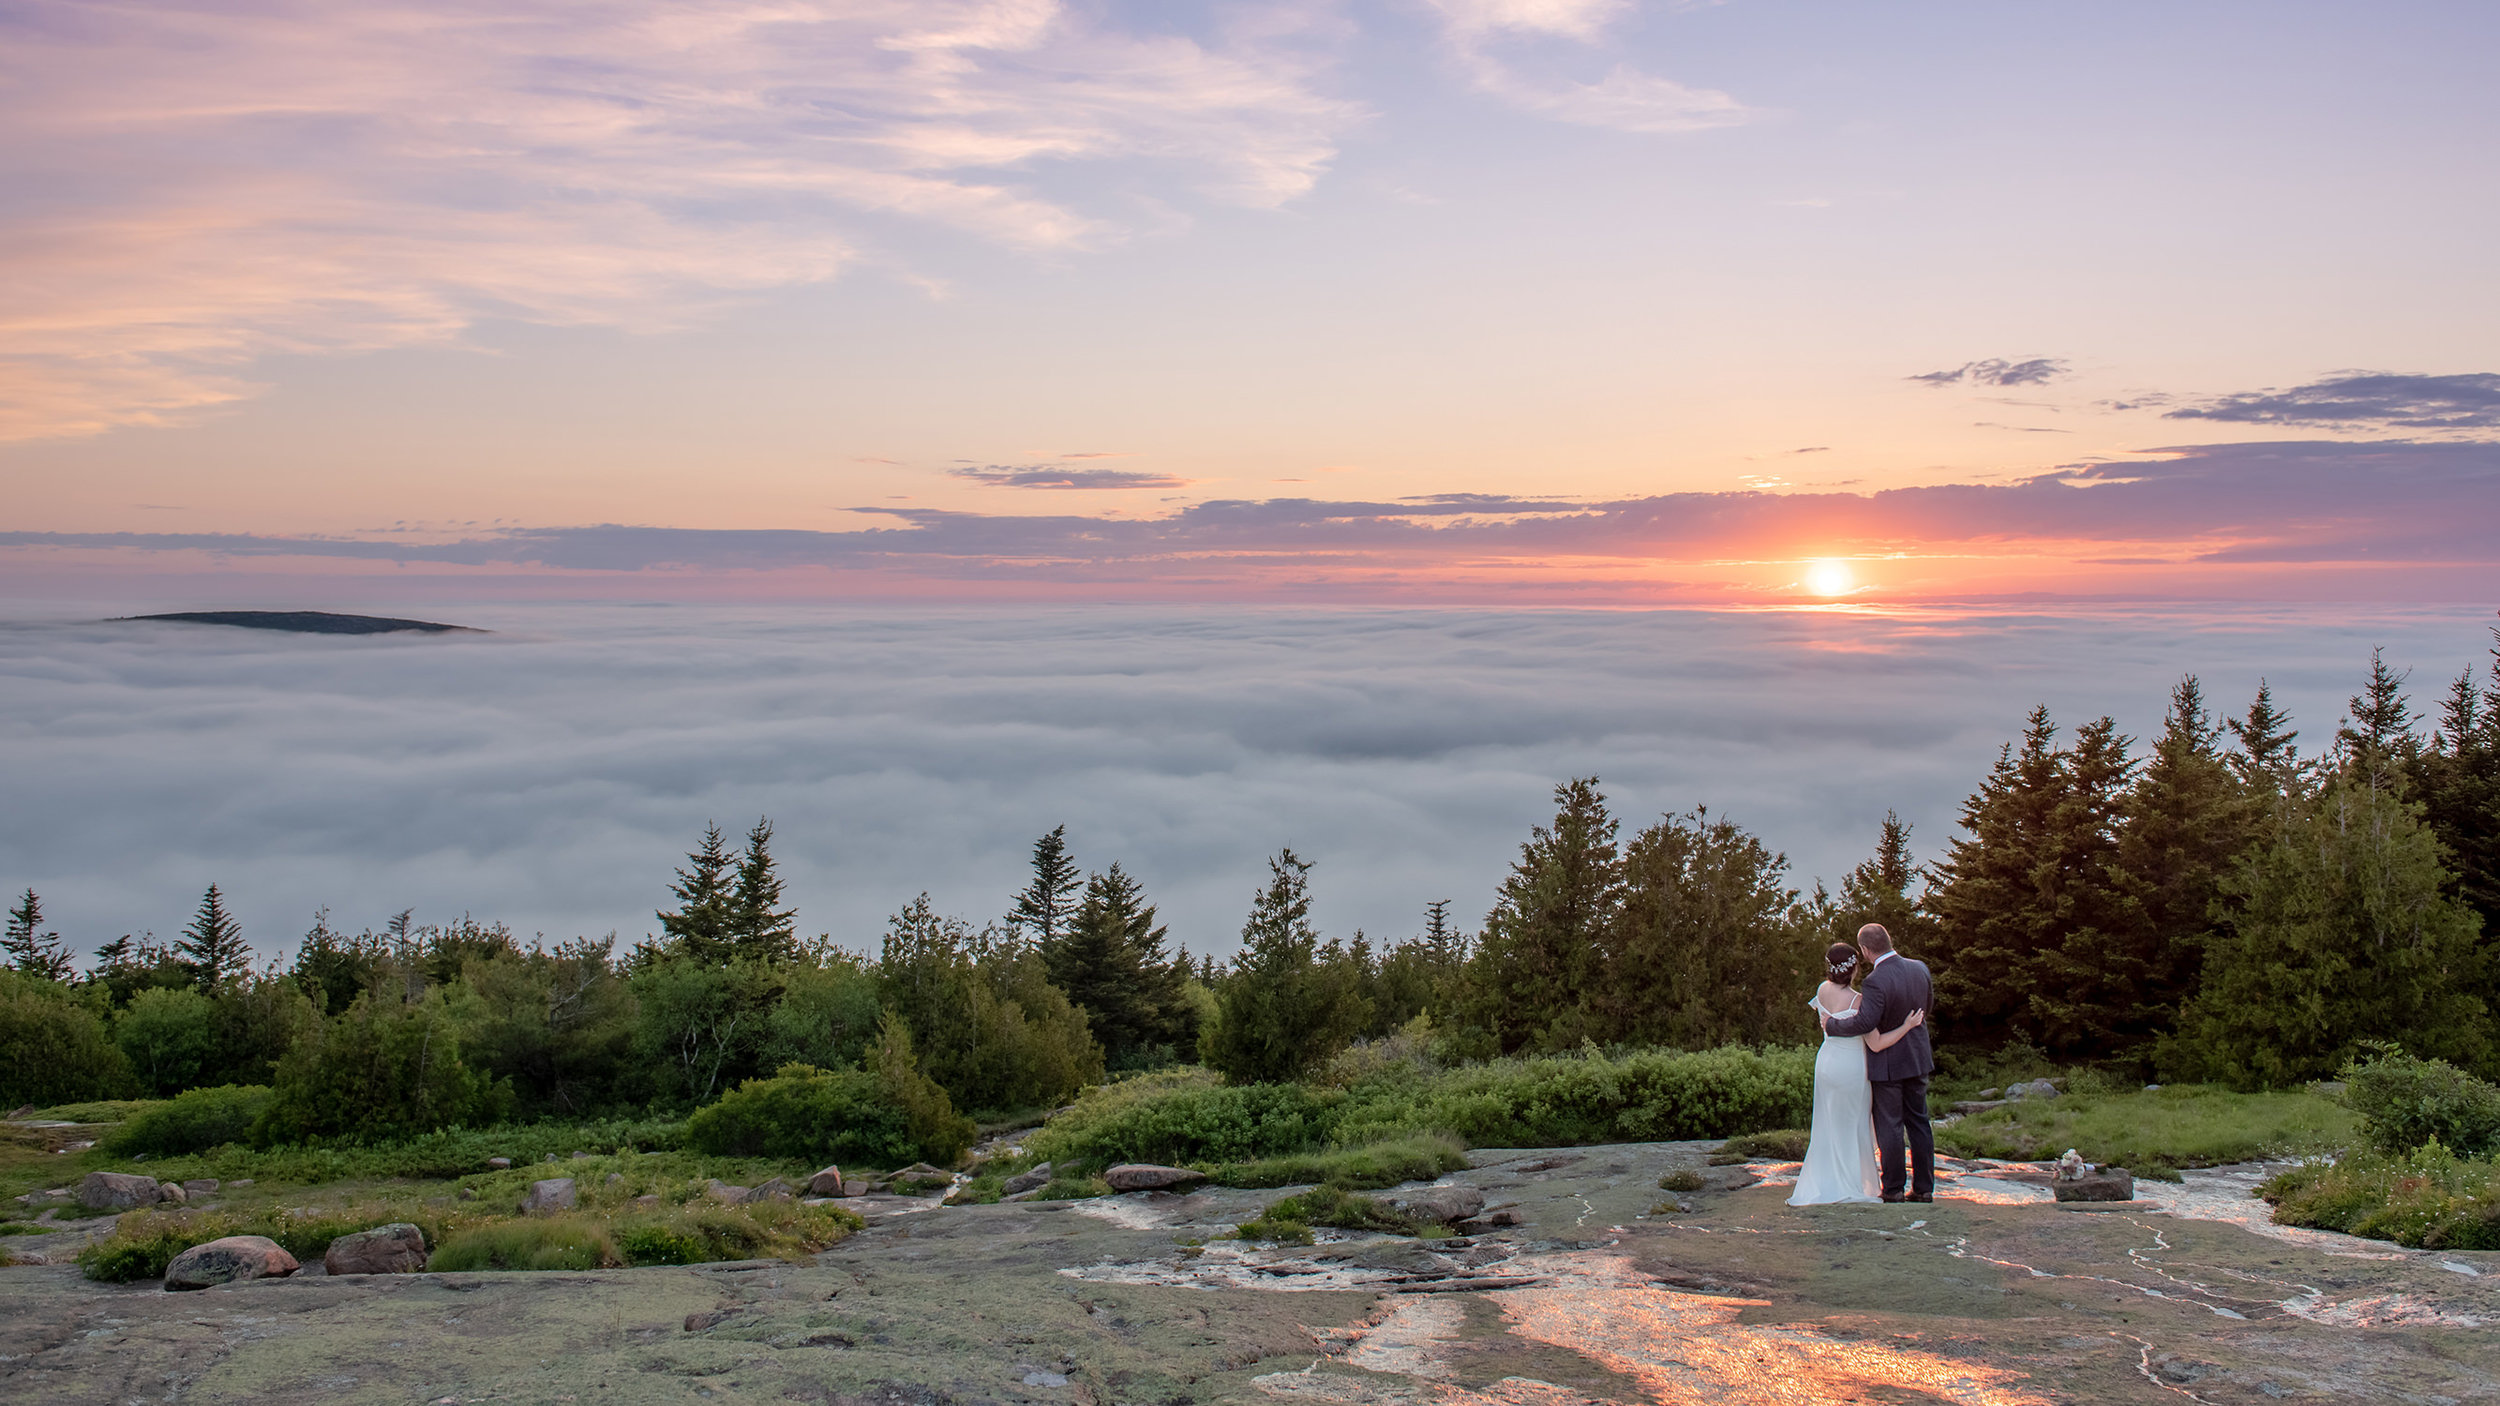 Acadia National Park Wedding, Adventure Wedding, Maine Wedding Photographer, Two Adventurous Souls.jpg